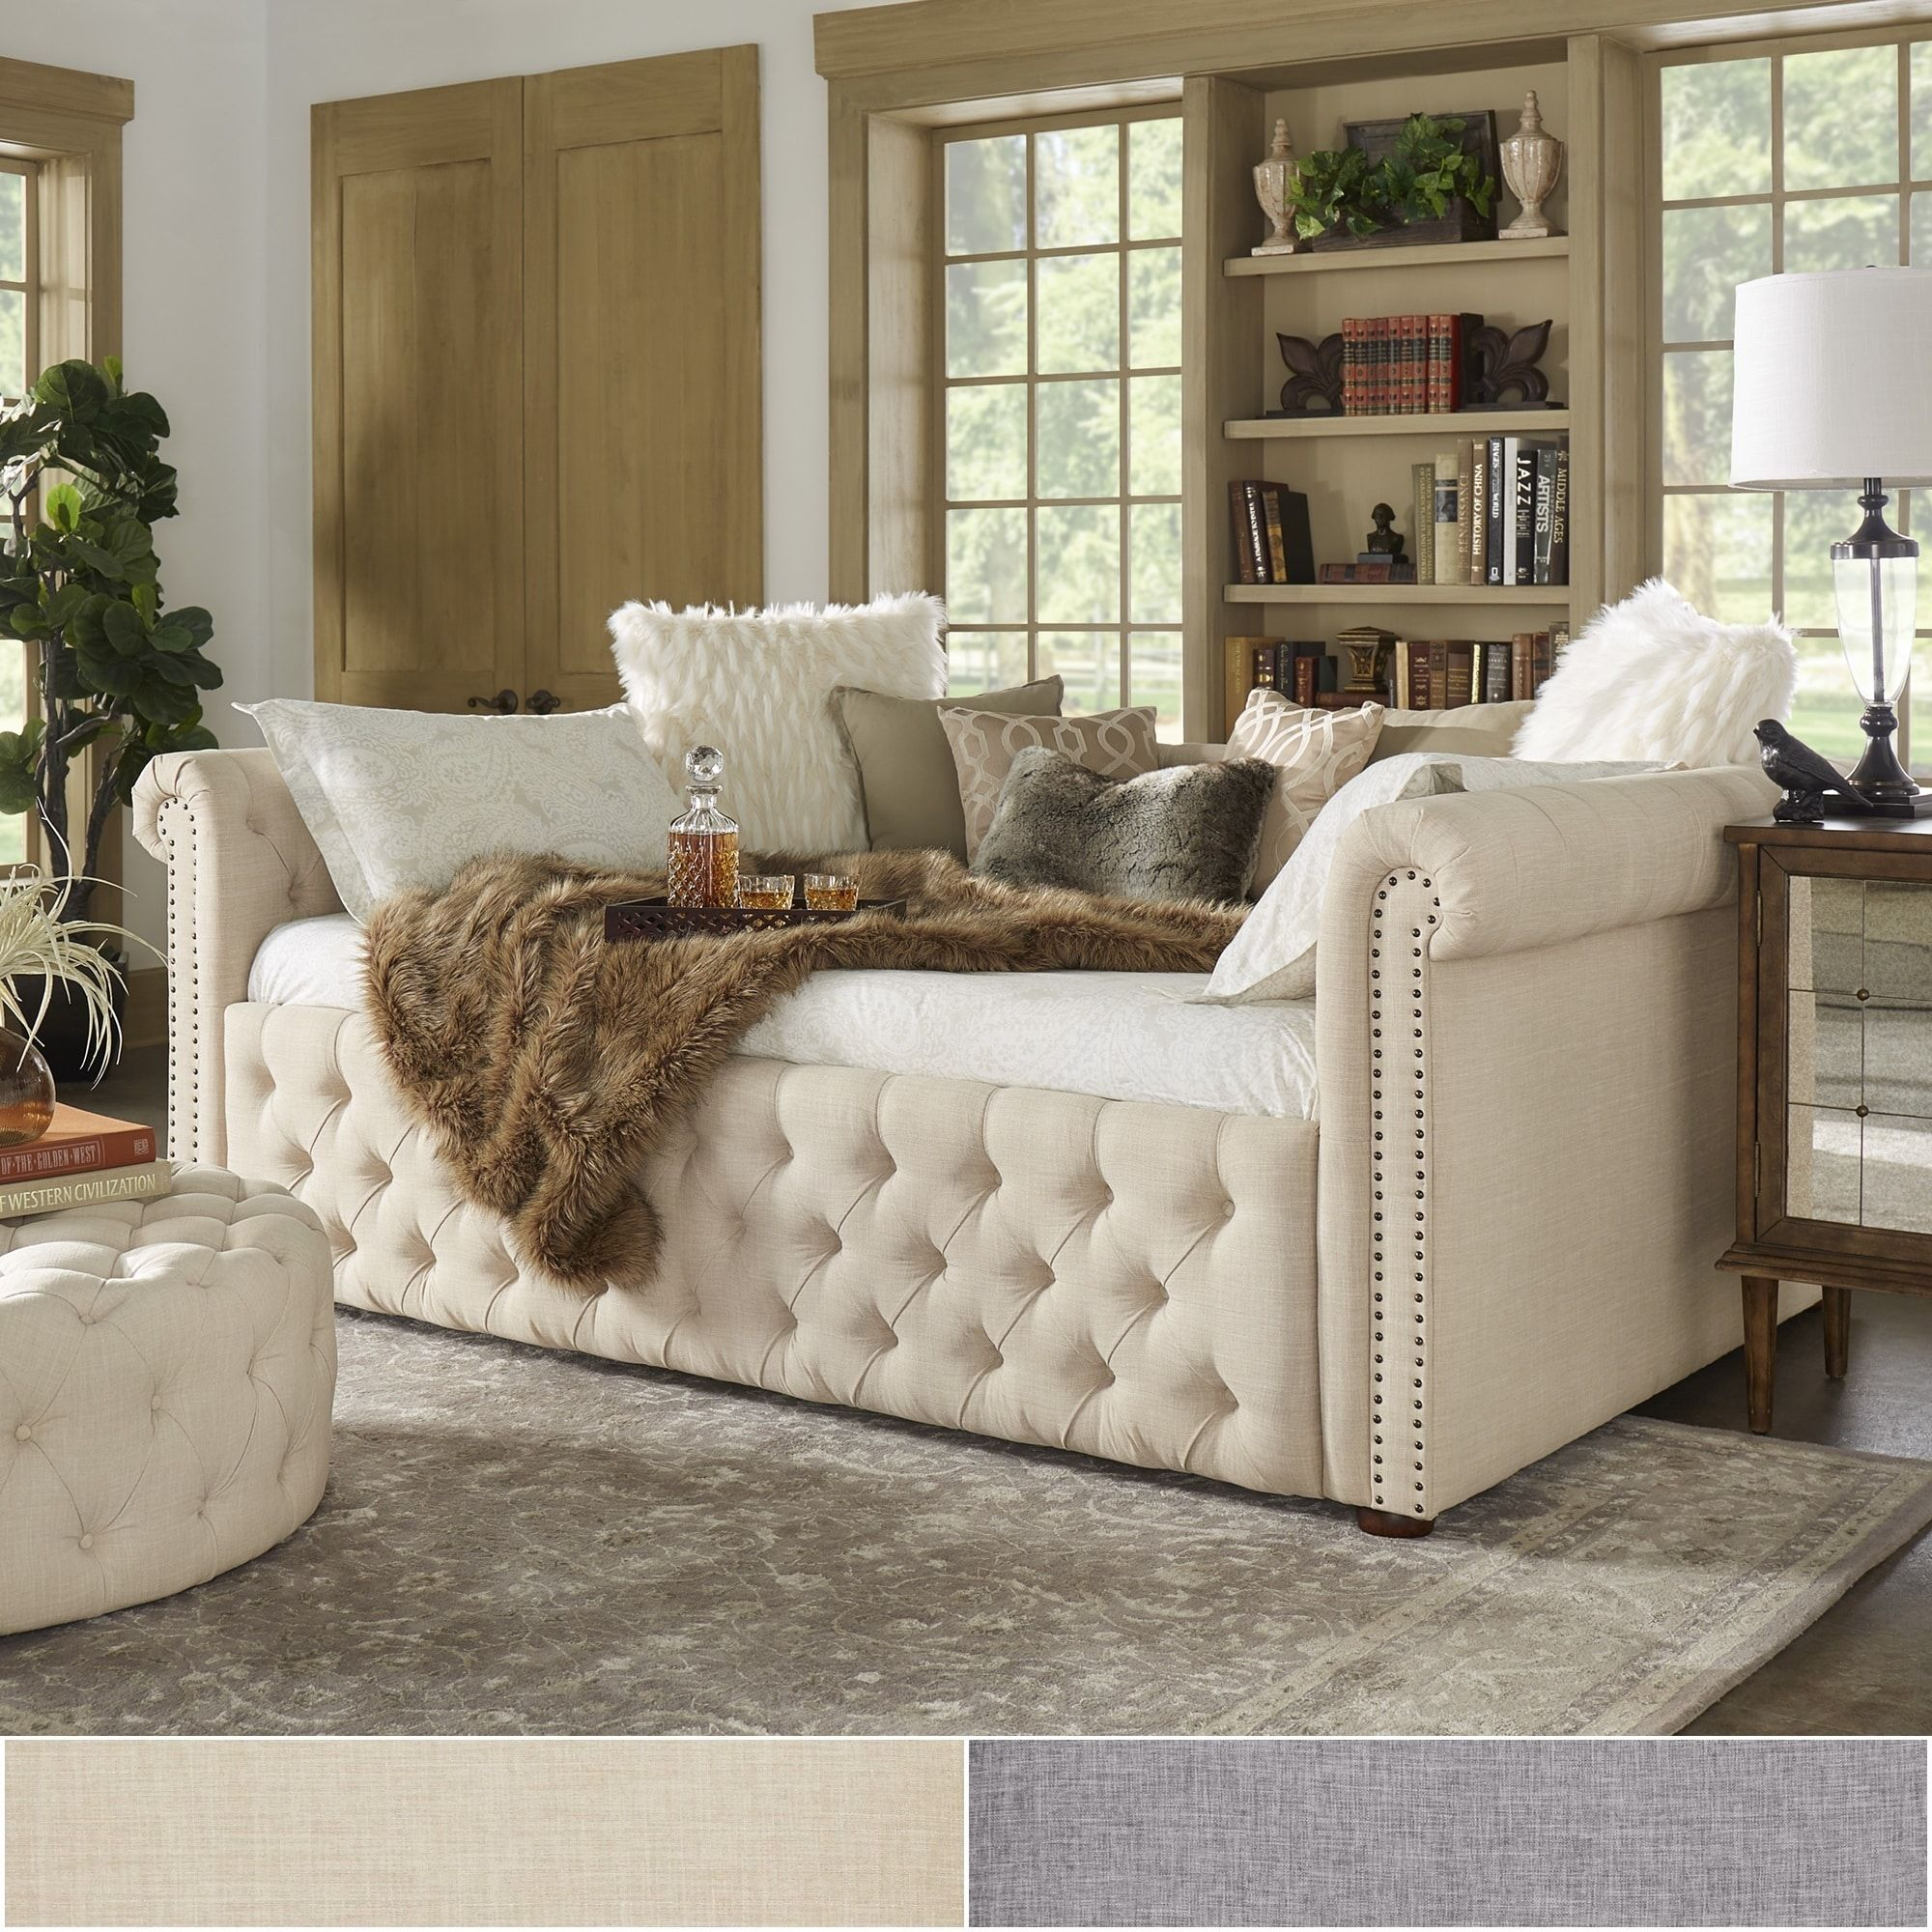 Knightsbridge Full Size Tufted Scroll Arm Chesterfield Daybed and Trundle  by iNSPIRE Q Artisan (Beige Linen Daybed Without Trundle)